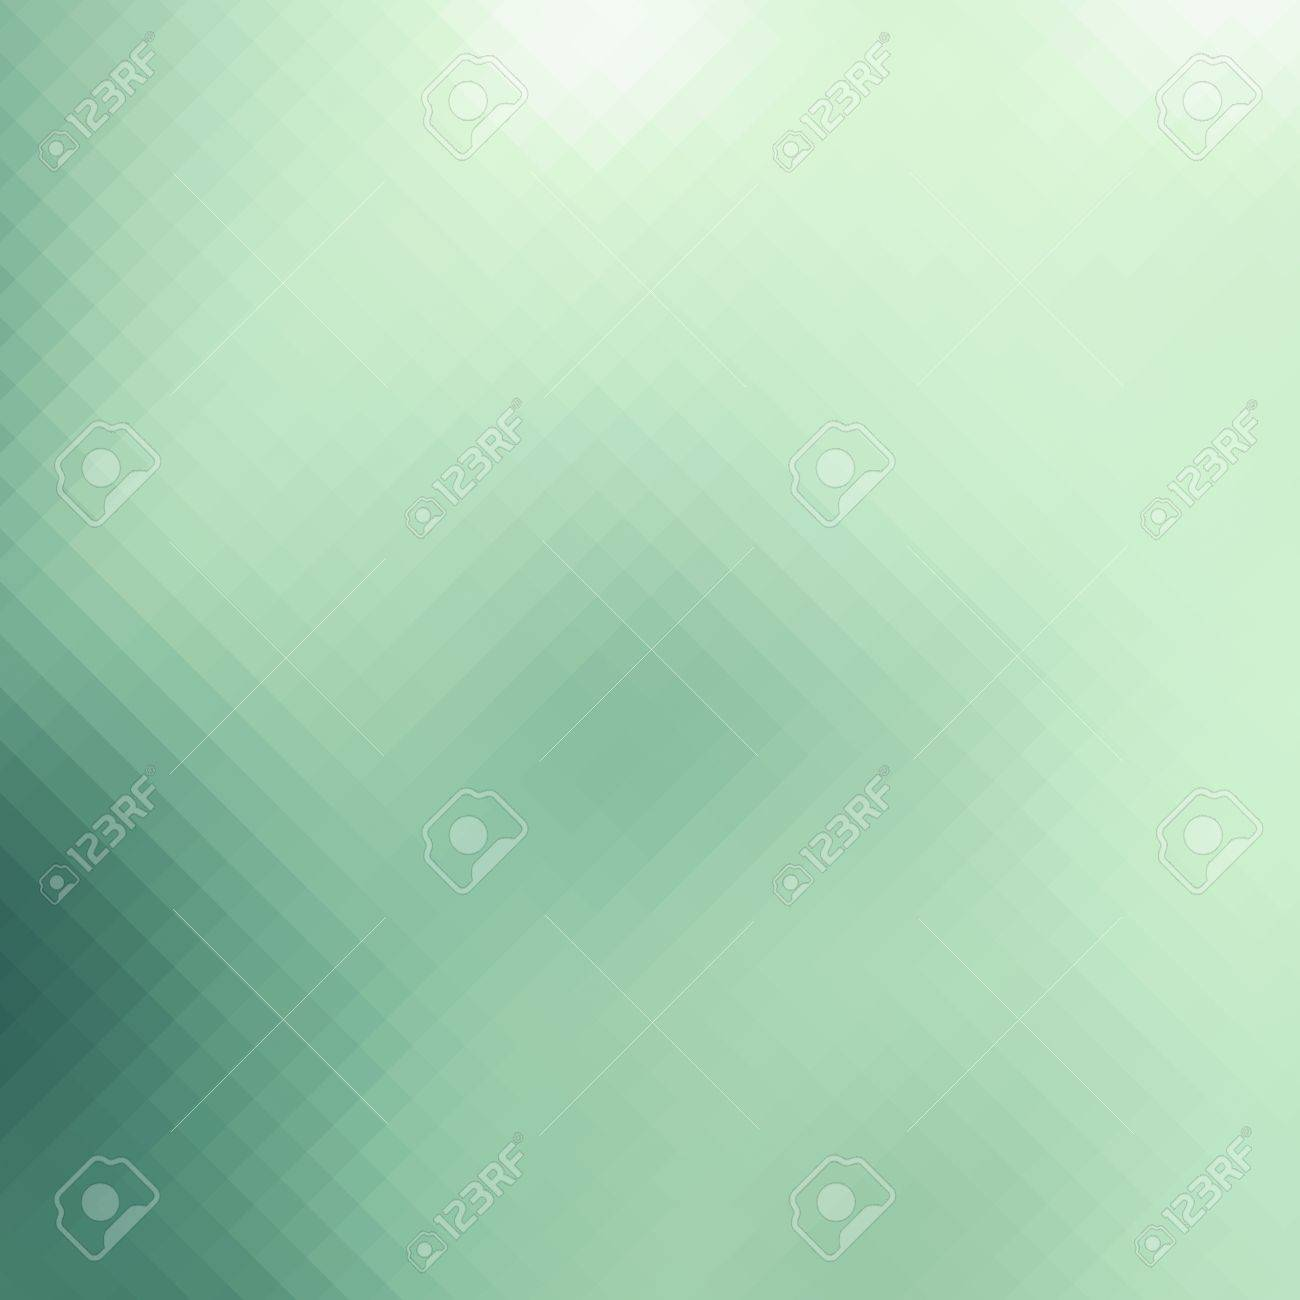 Abstract green pixelated background business card template stock abstract green pixelated background business card template website design stock photo 22004369 reheart Choice Image